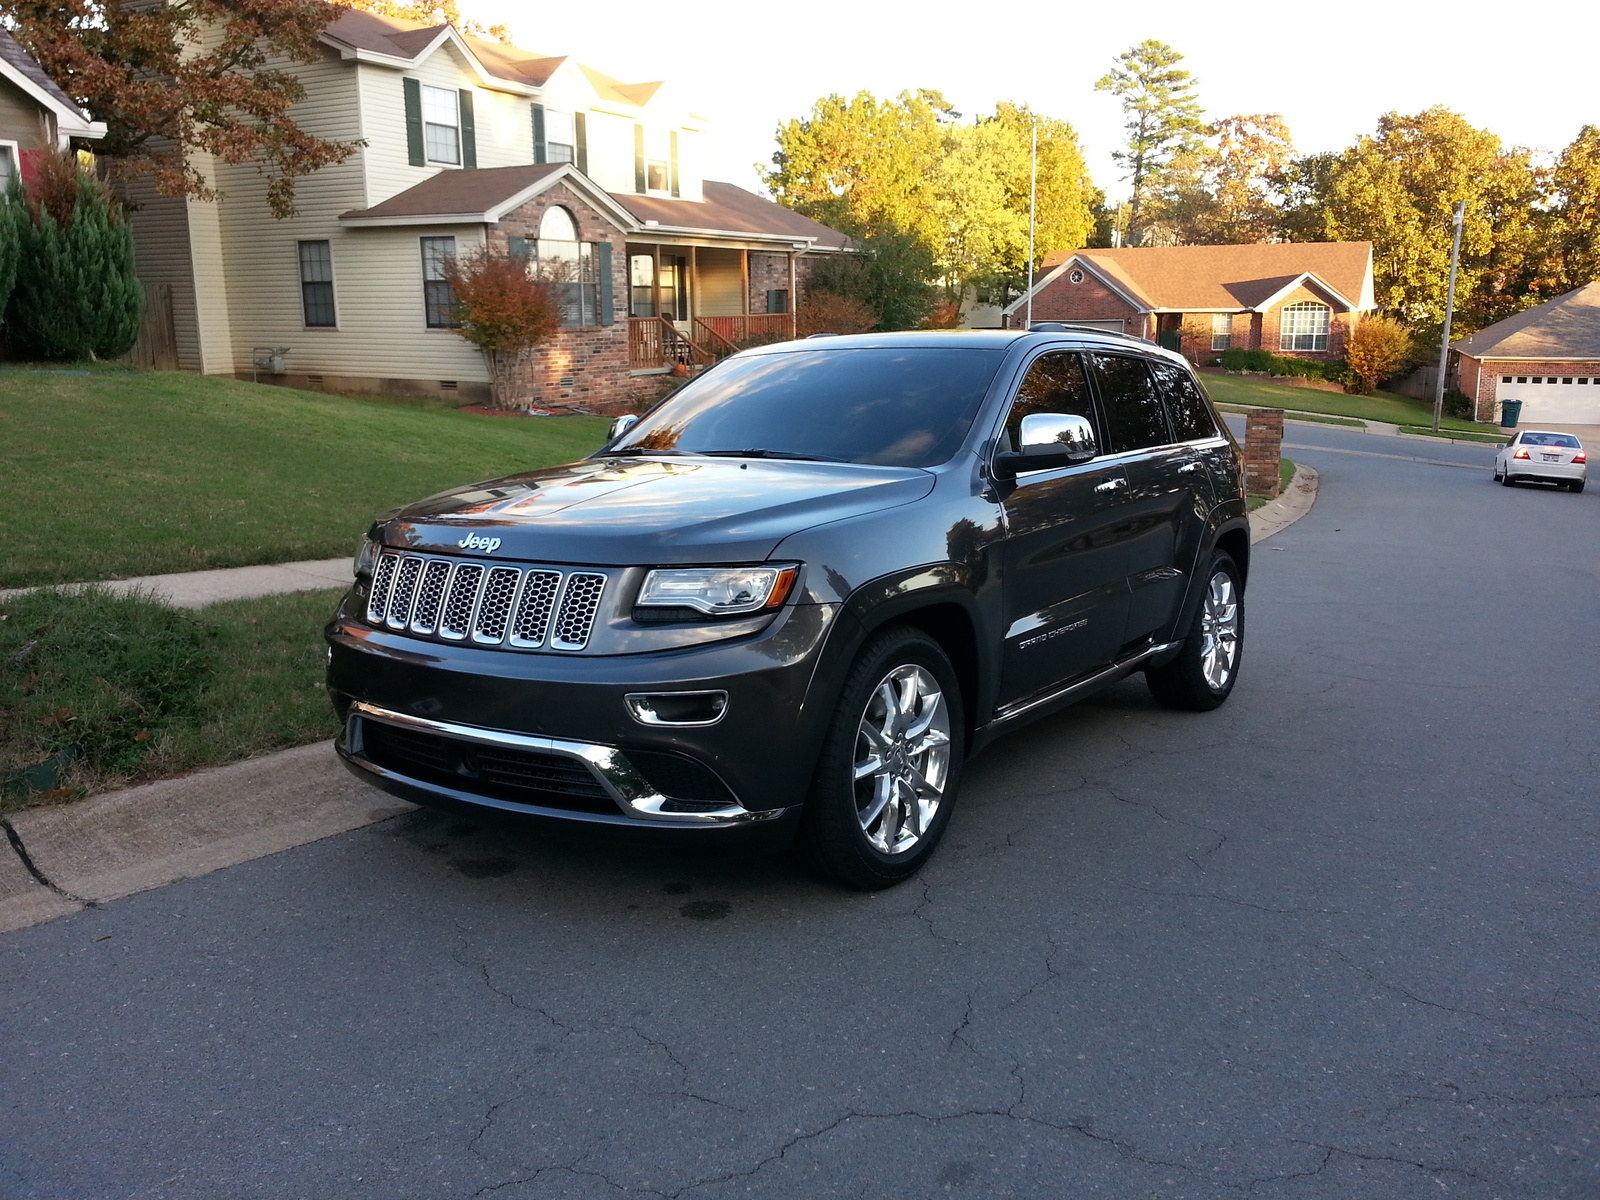 2014 jeep grand cherokee overland summit review